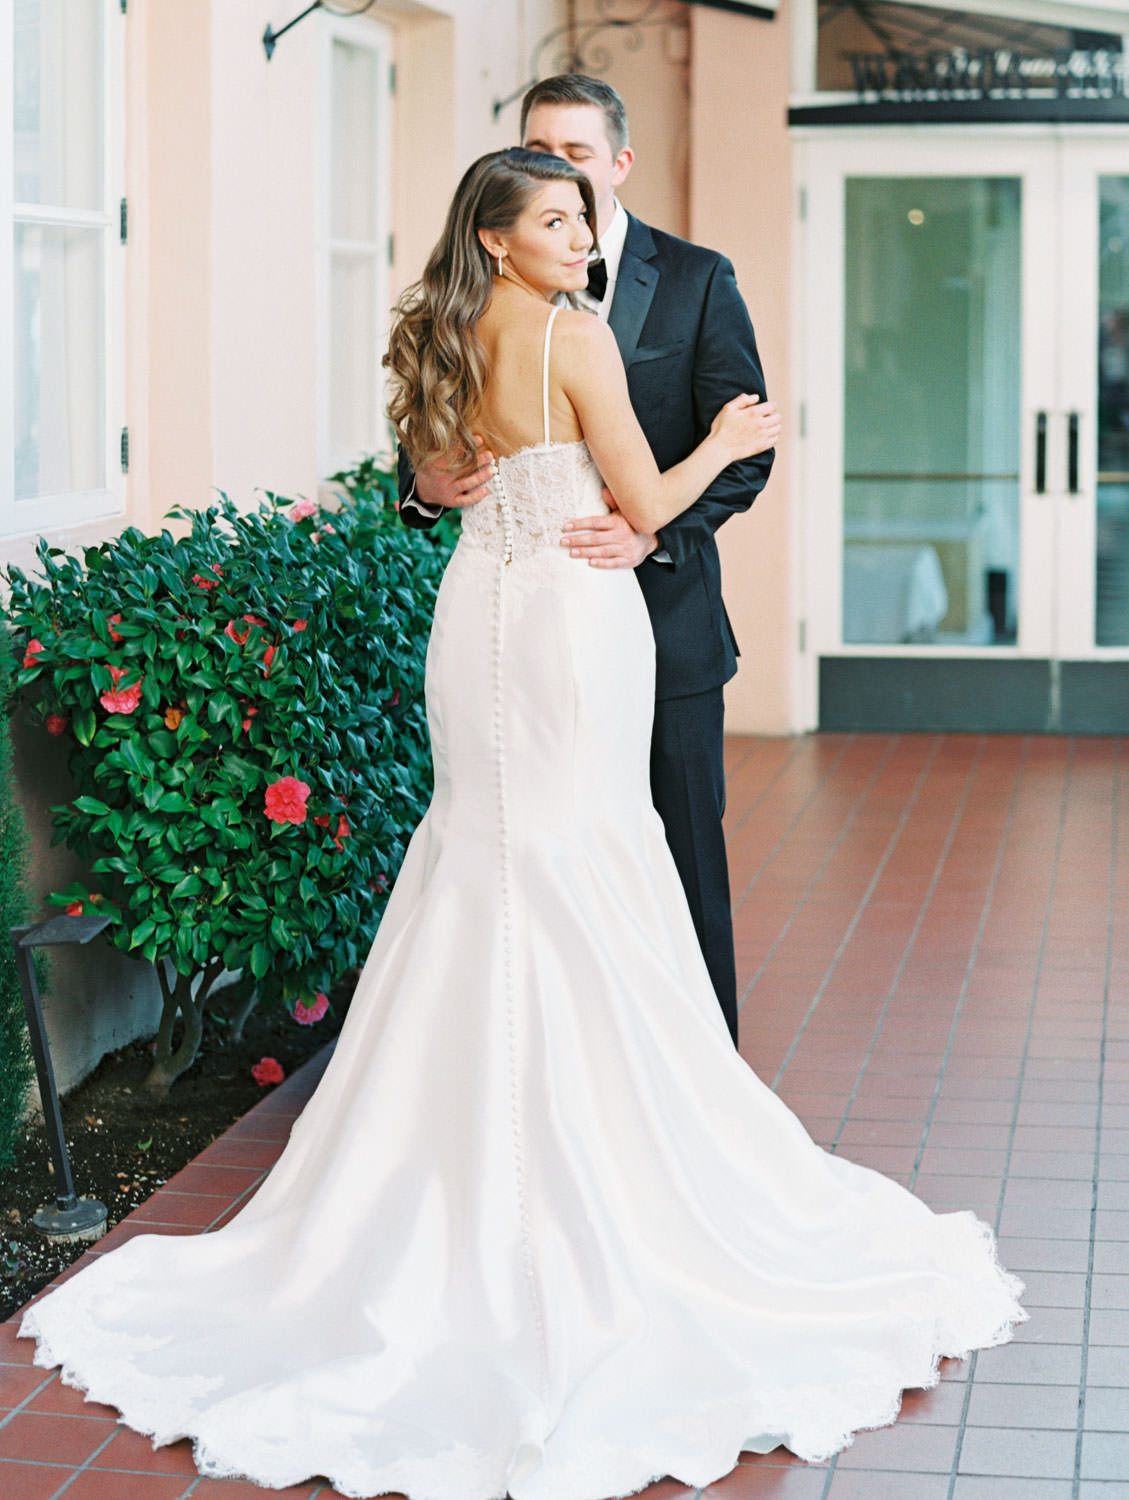 Elegant and glam bridal hair and gown with long train, Intimate Wedding at La Valencia Hotel in La Jolla by Cavin Elizabeth Photography